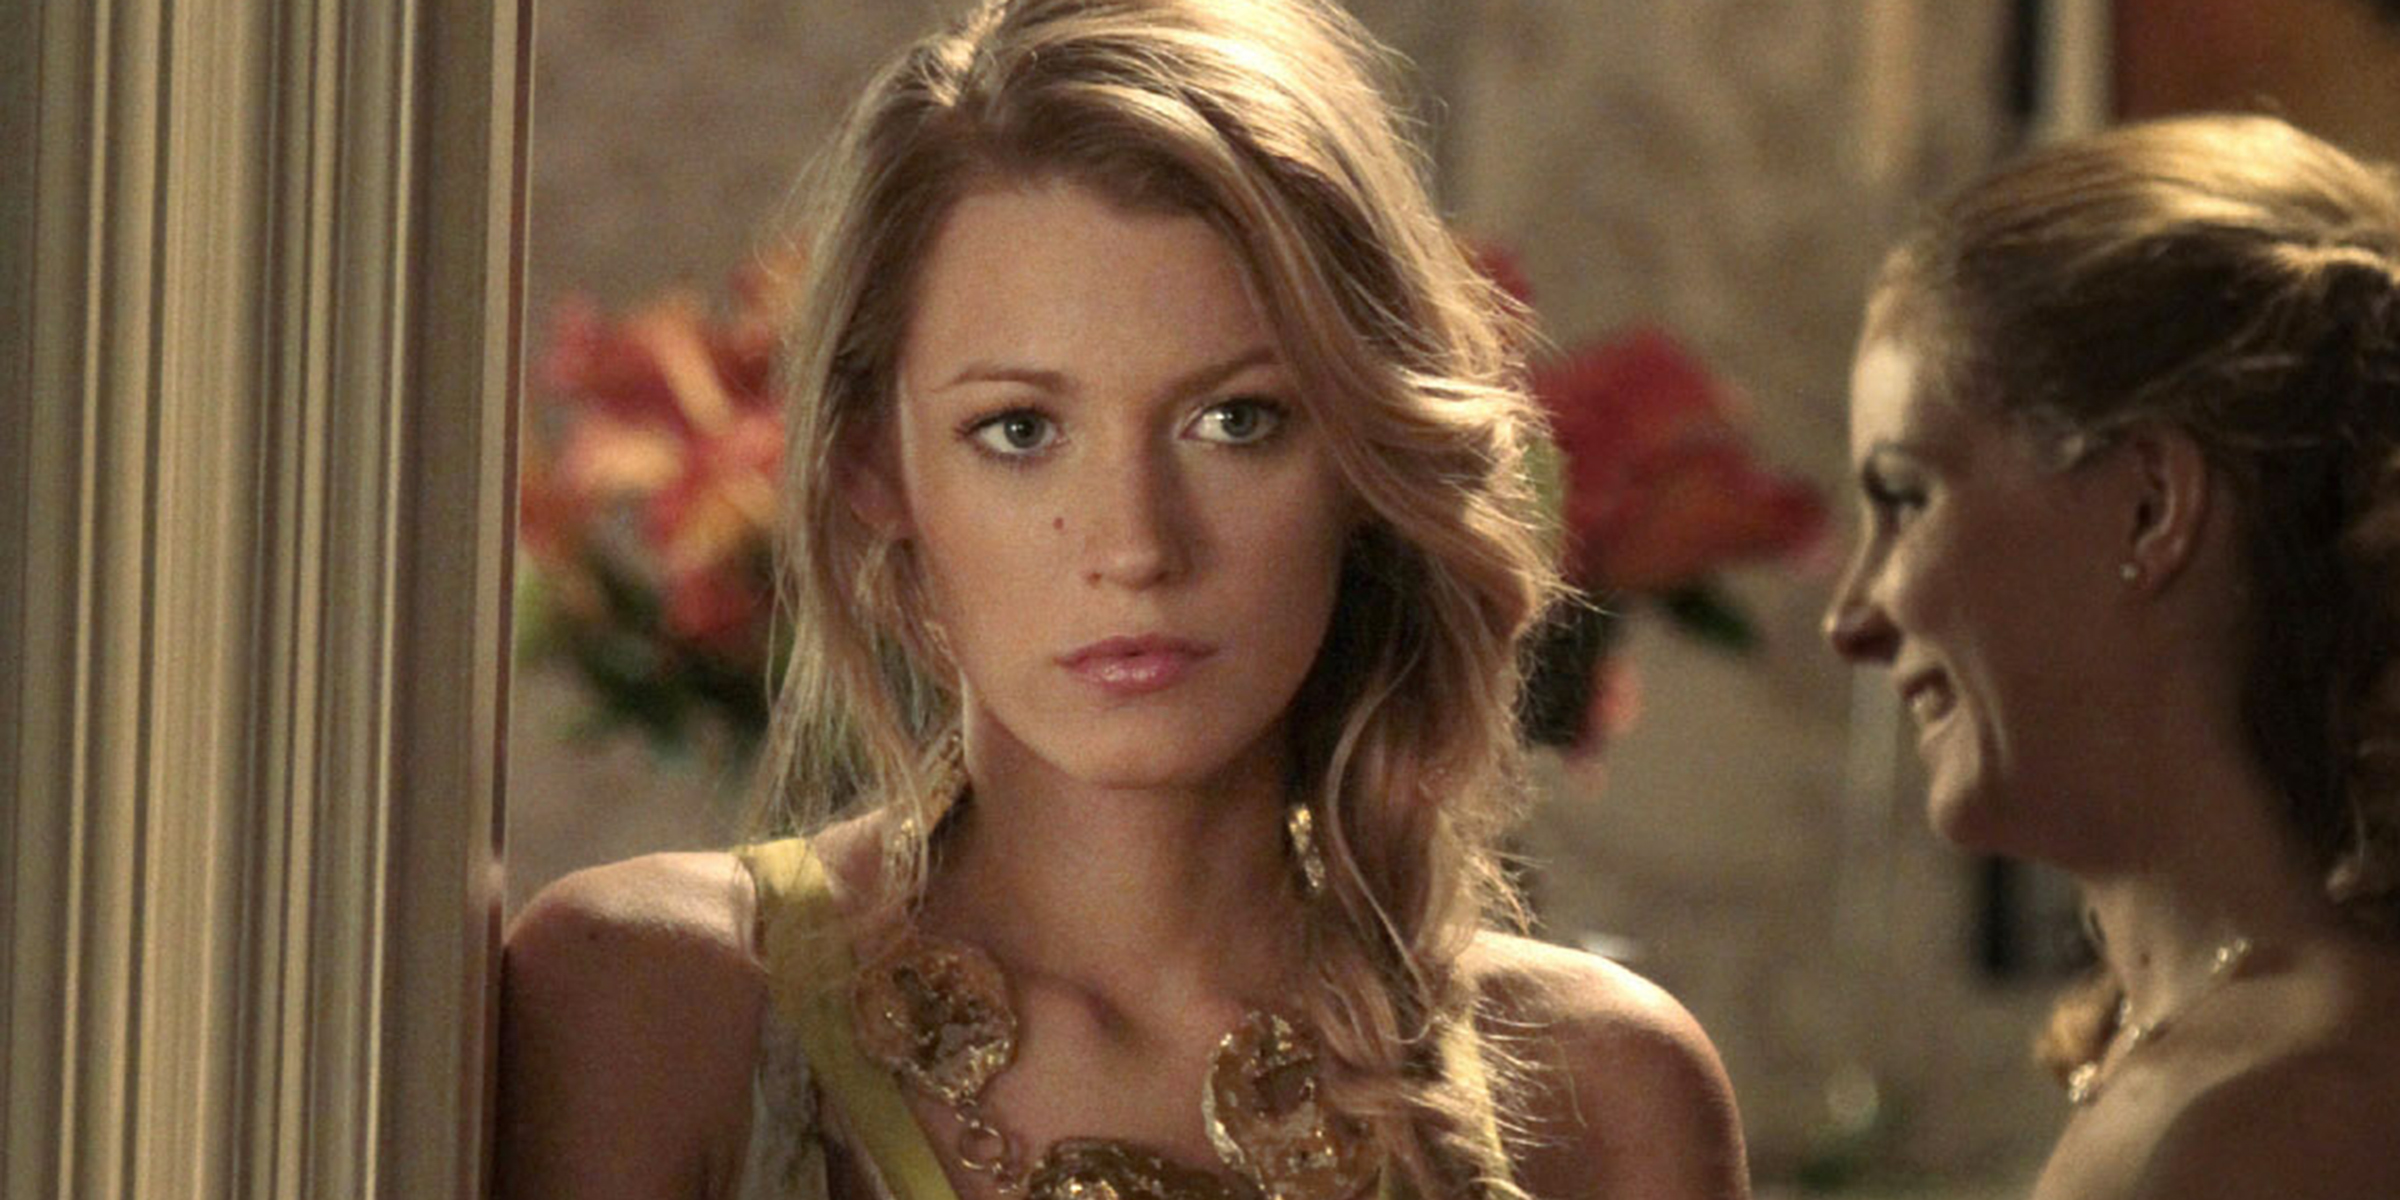 Blake Lively as Serena on Gossip Girl expressed concern about the message her character sent out.